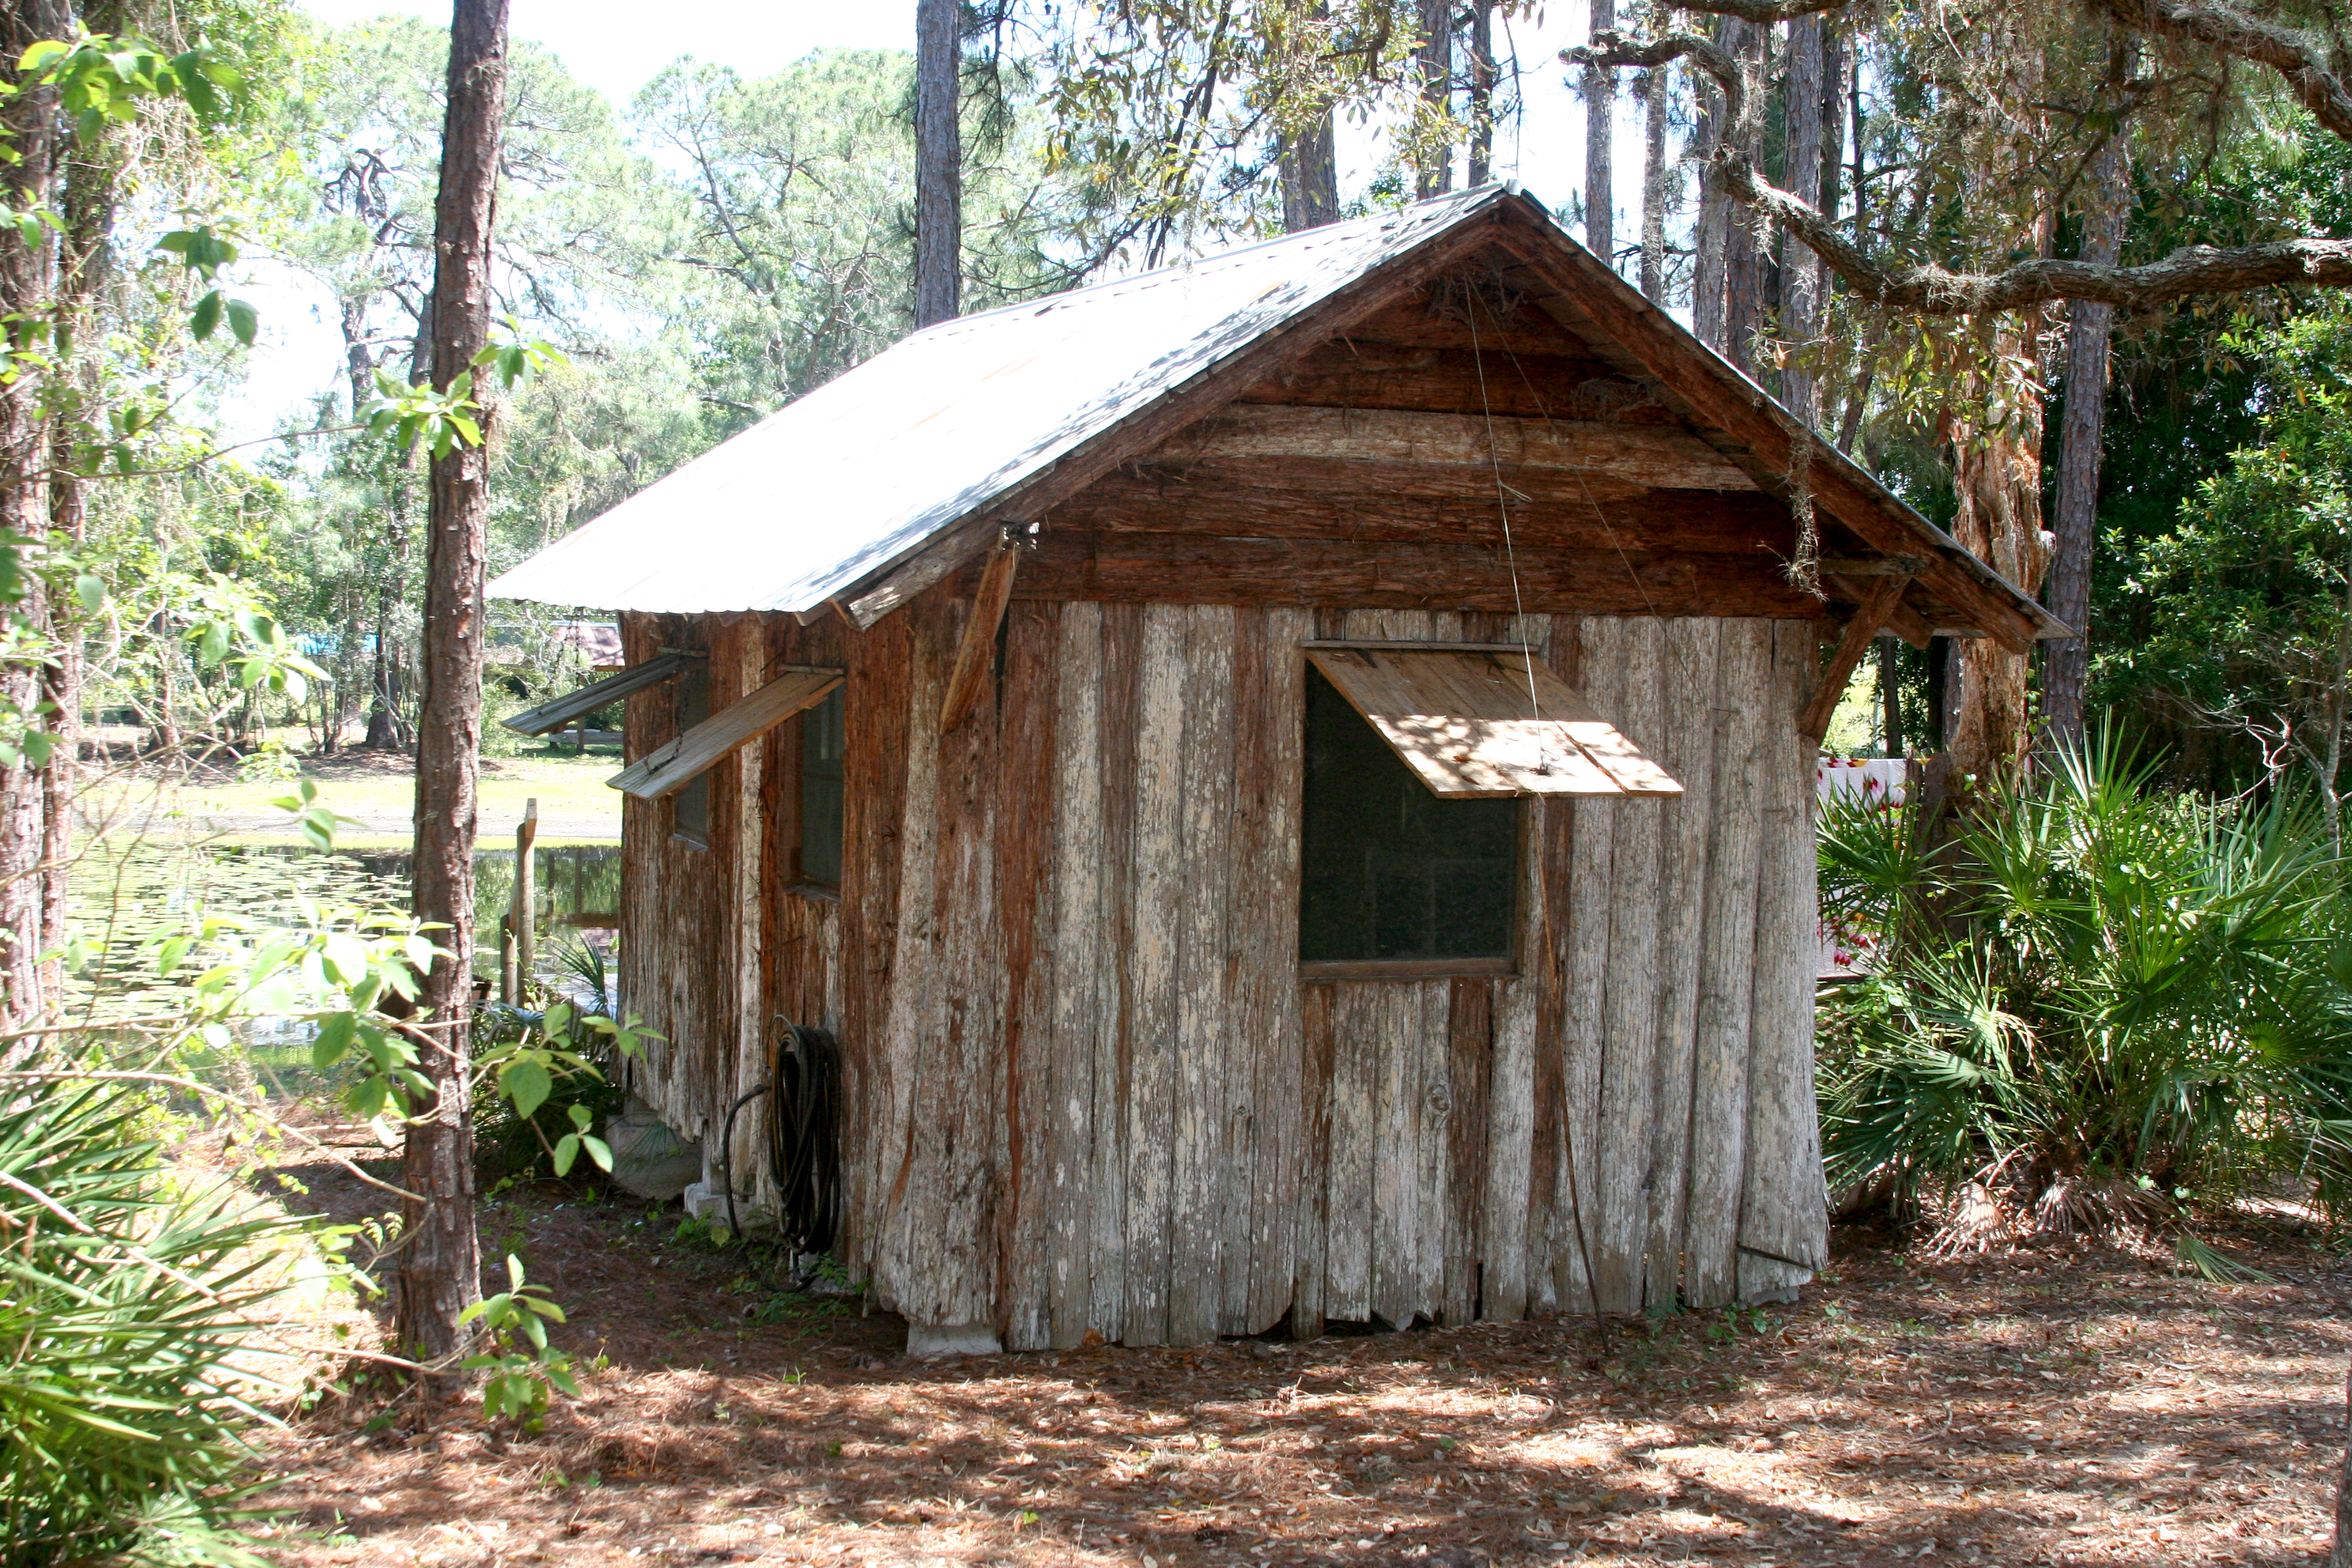 small-cabin-in-the-woods_8636564676_o